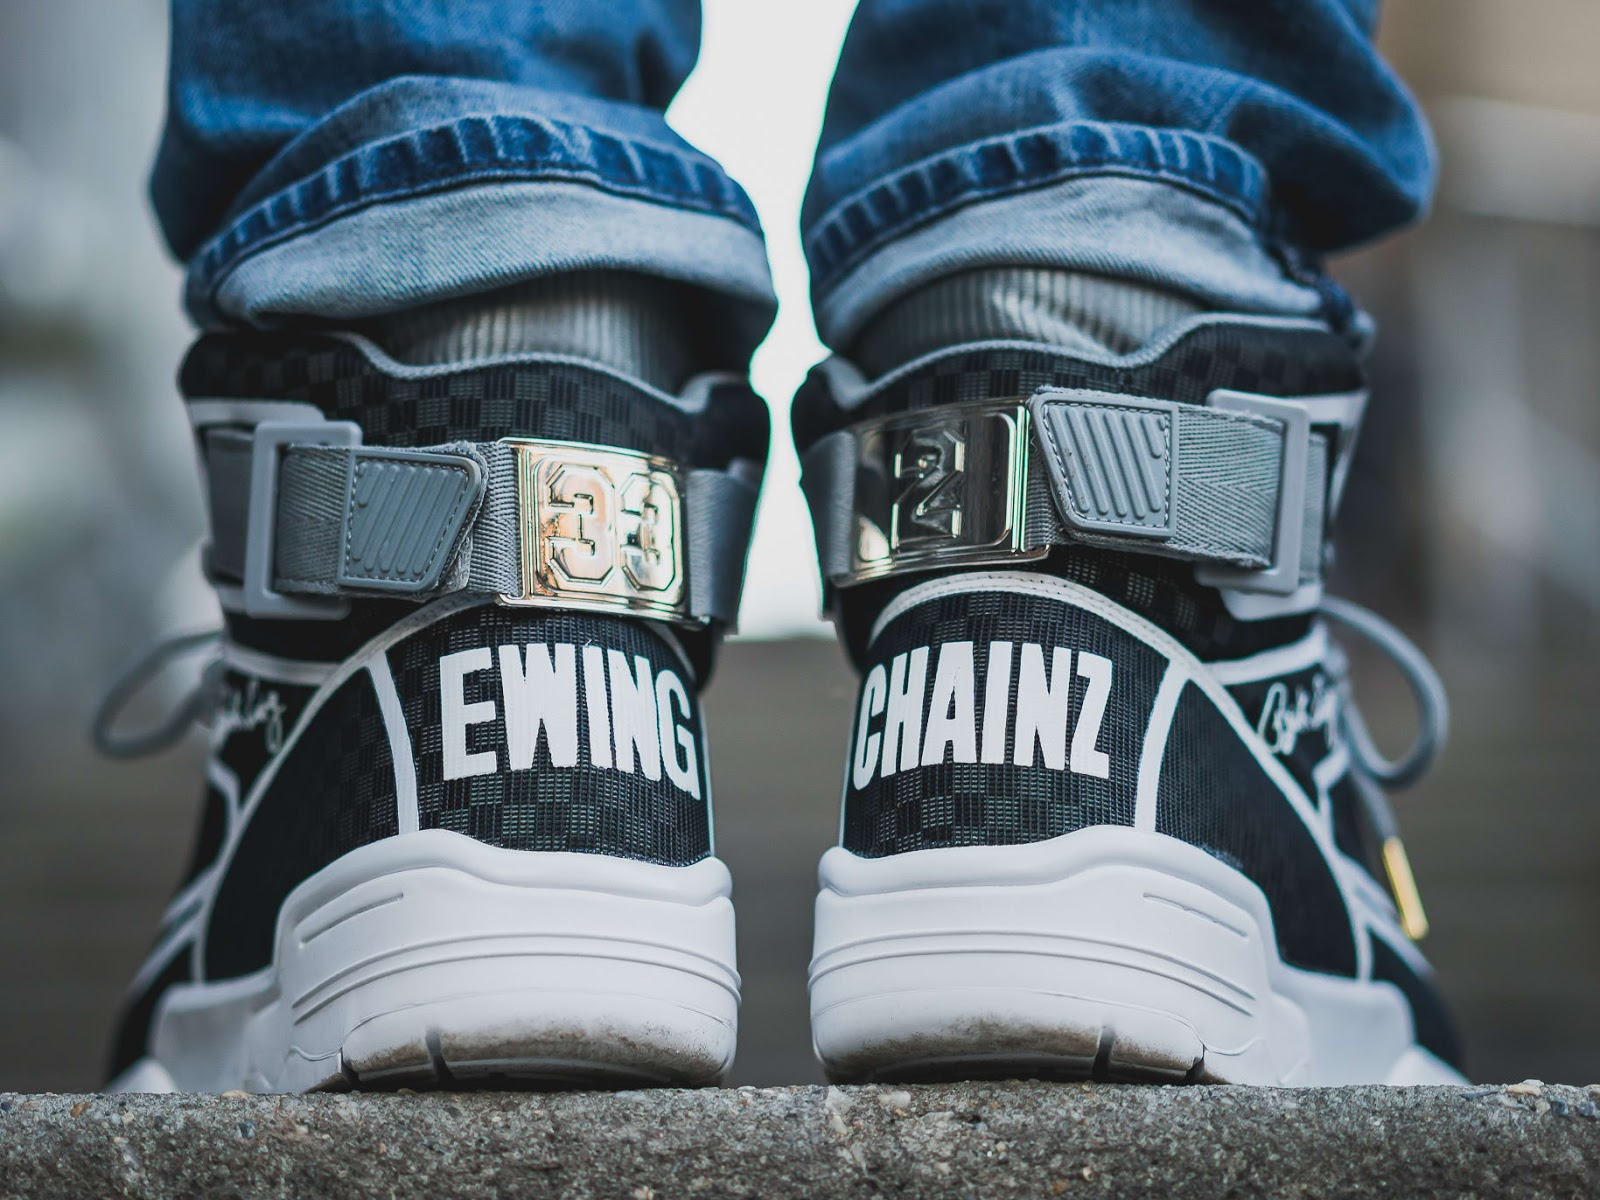 separation shoes c3141 955fe 2 Chainz has joined forces with Ewing Athletics to launch a collaborative  sneaker. The canvas of choice is the Ewing 33 Hi which exudes an old school  ...